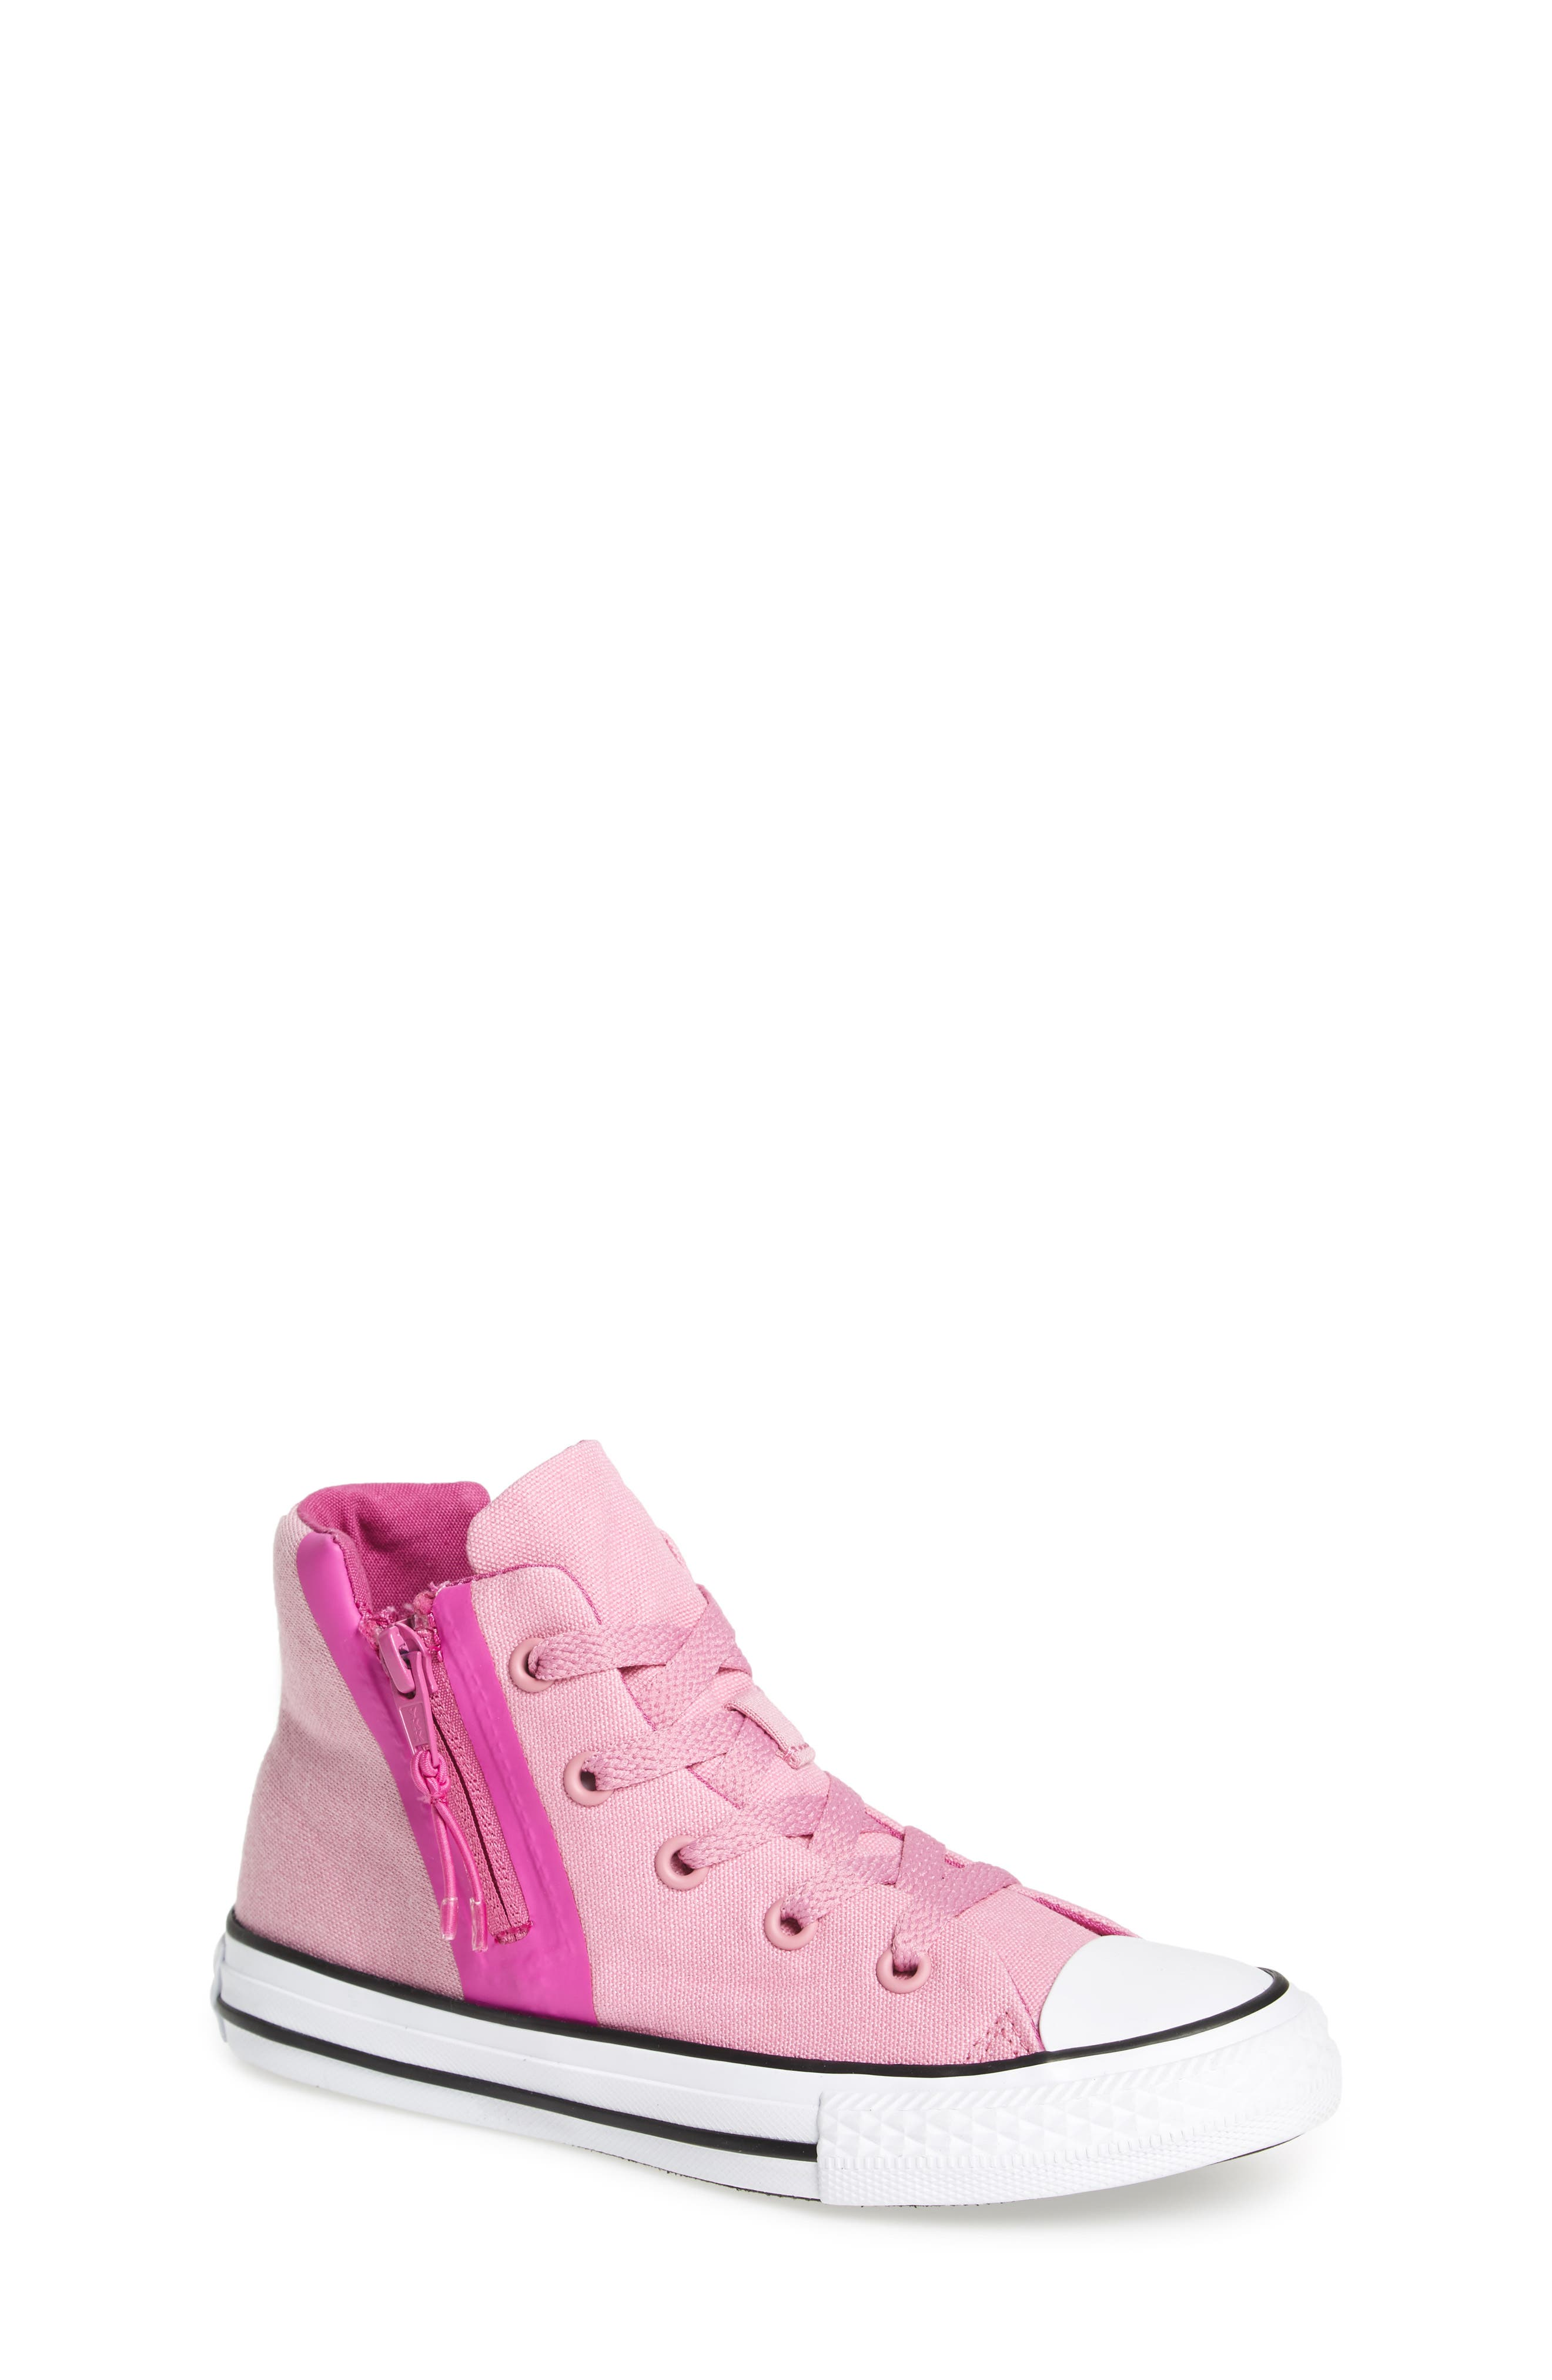 Chuck Taylor<sup>®</sup> All Star<sup>®</sup> Sport Zip High Top Sneaker,                             Main thumbnail 1, color,